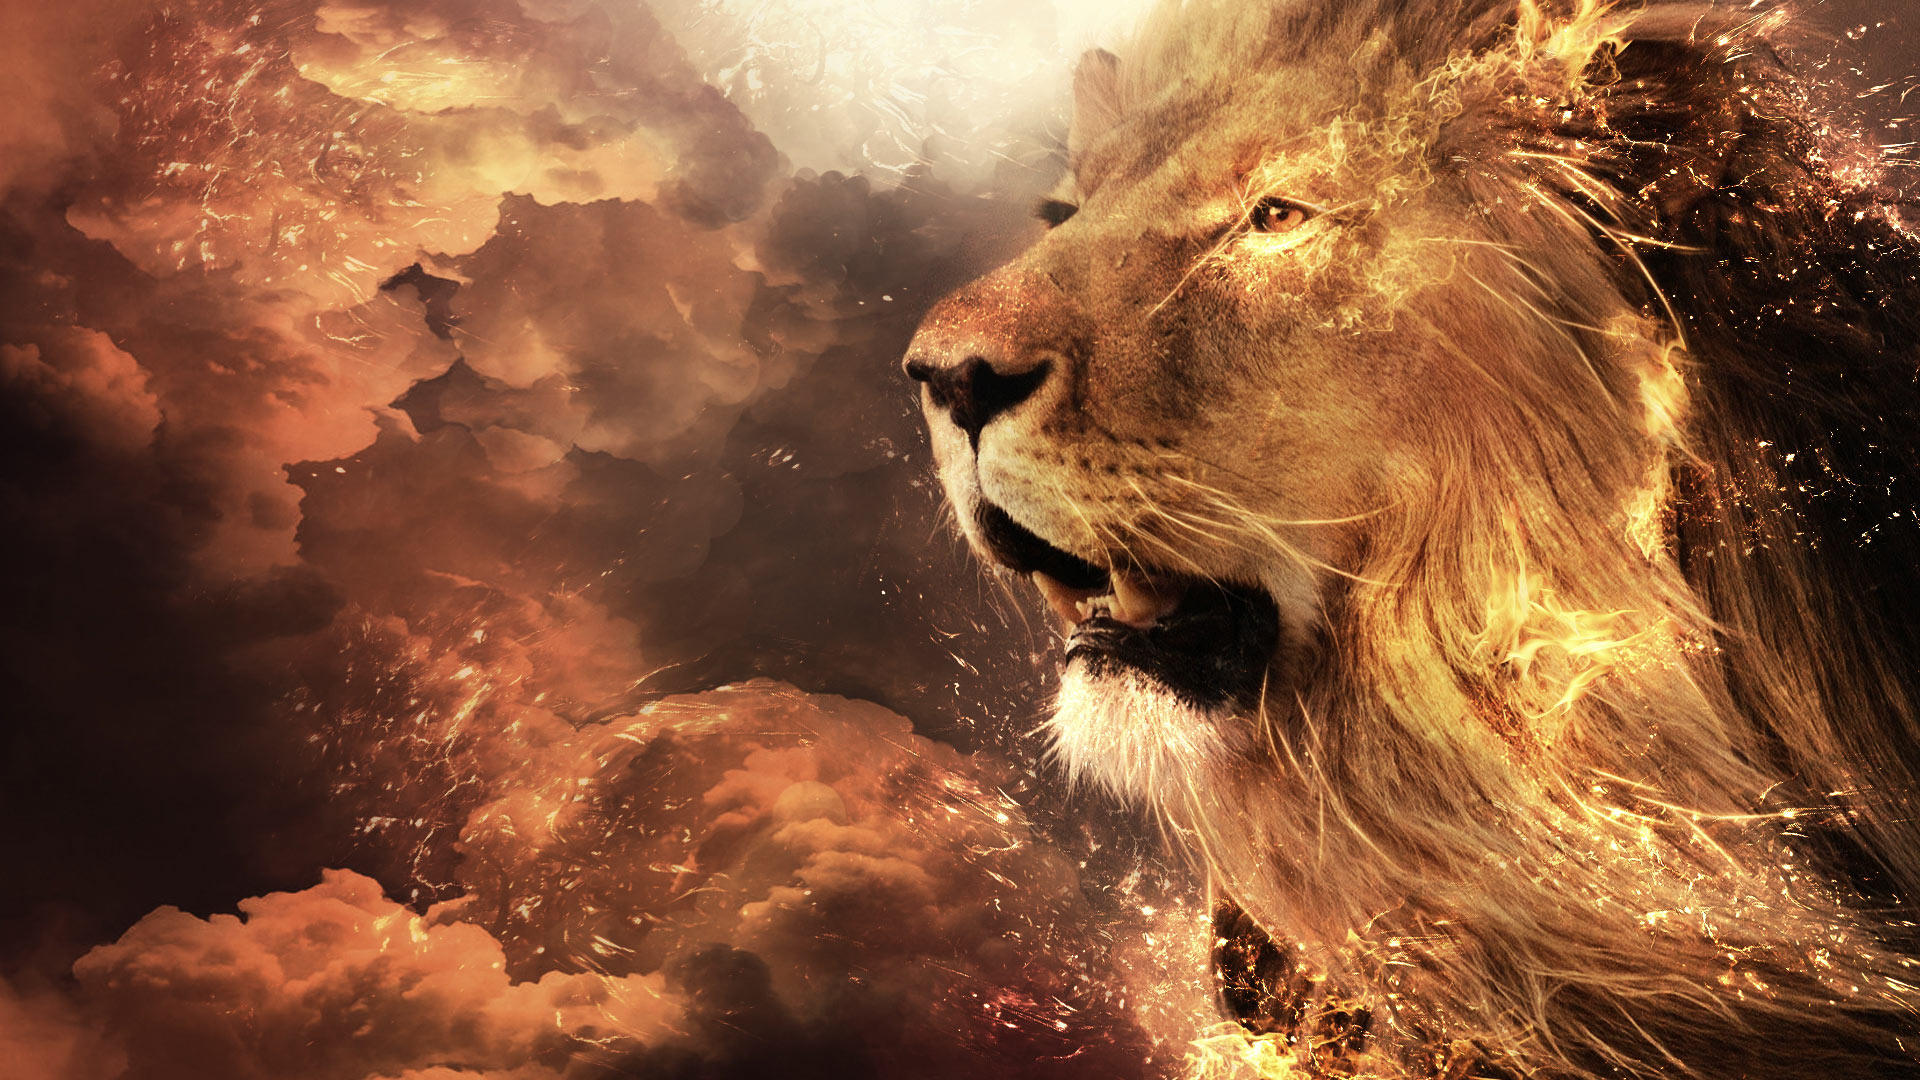 HD Aslan Narnia Background - Page 2 of 3 - wallpaper.wiki for Narnia Aslan Wallpaper  66pct